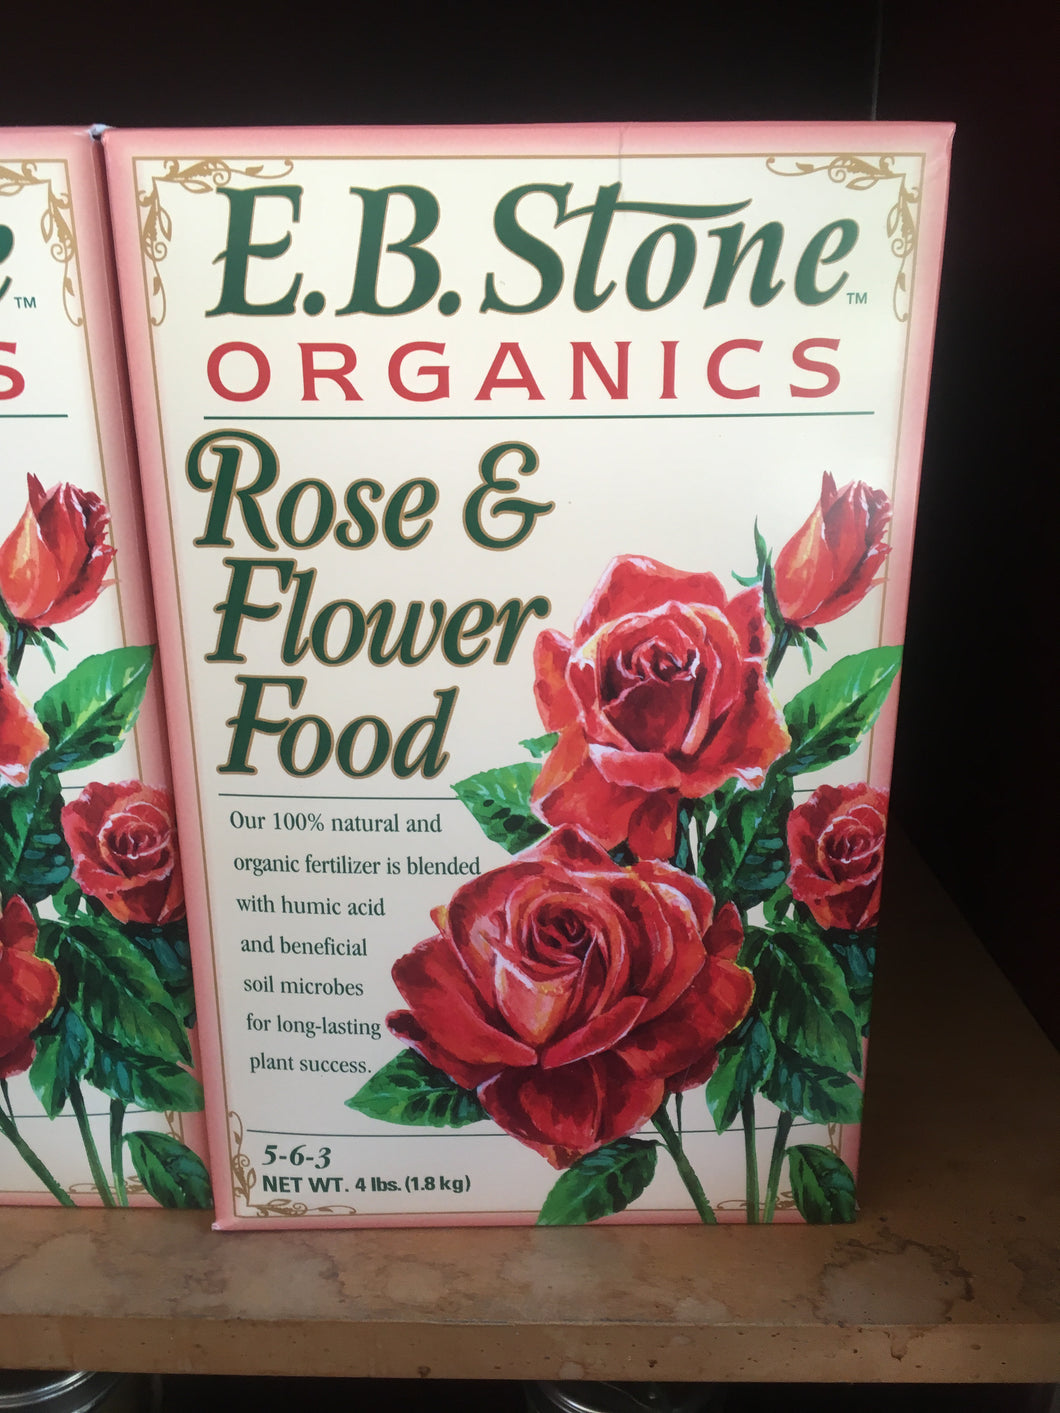 Rose & Flower Food 4lb box (in store)